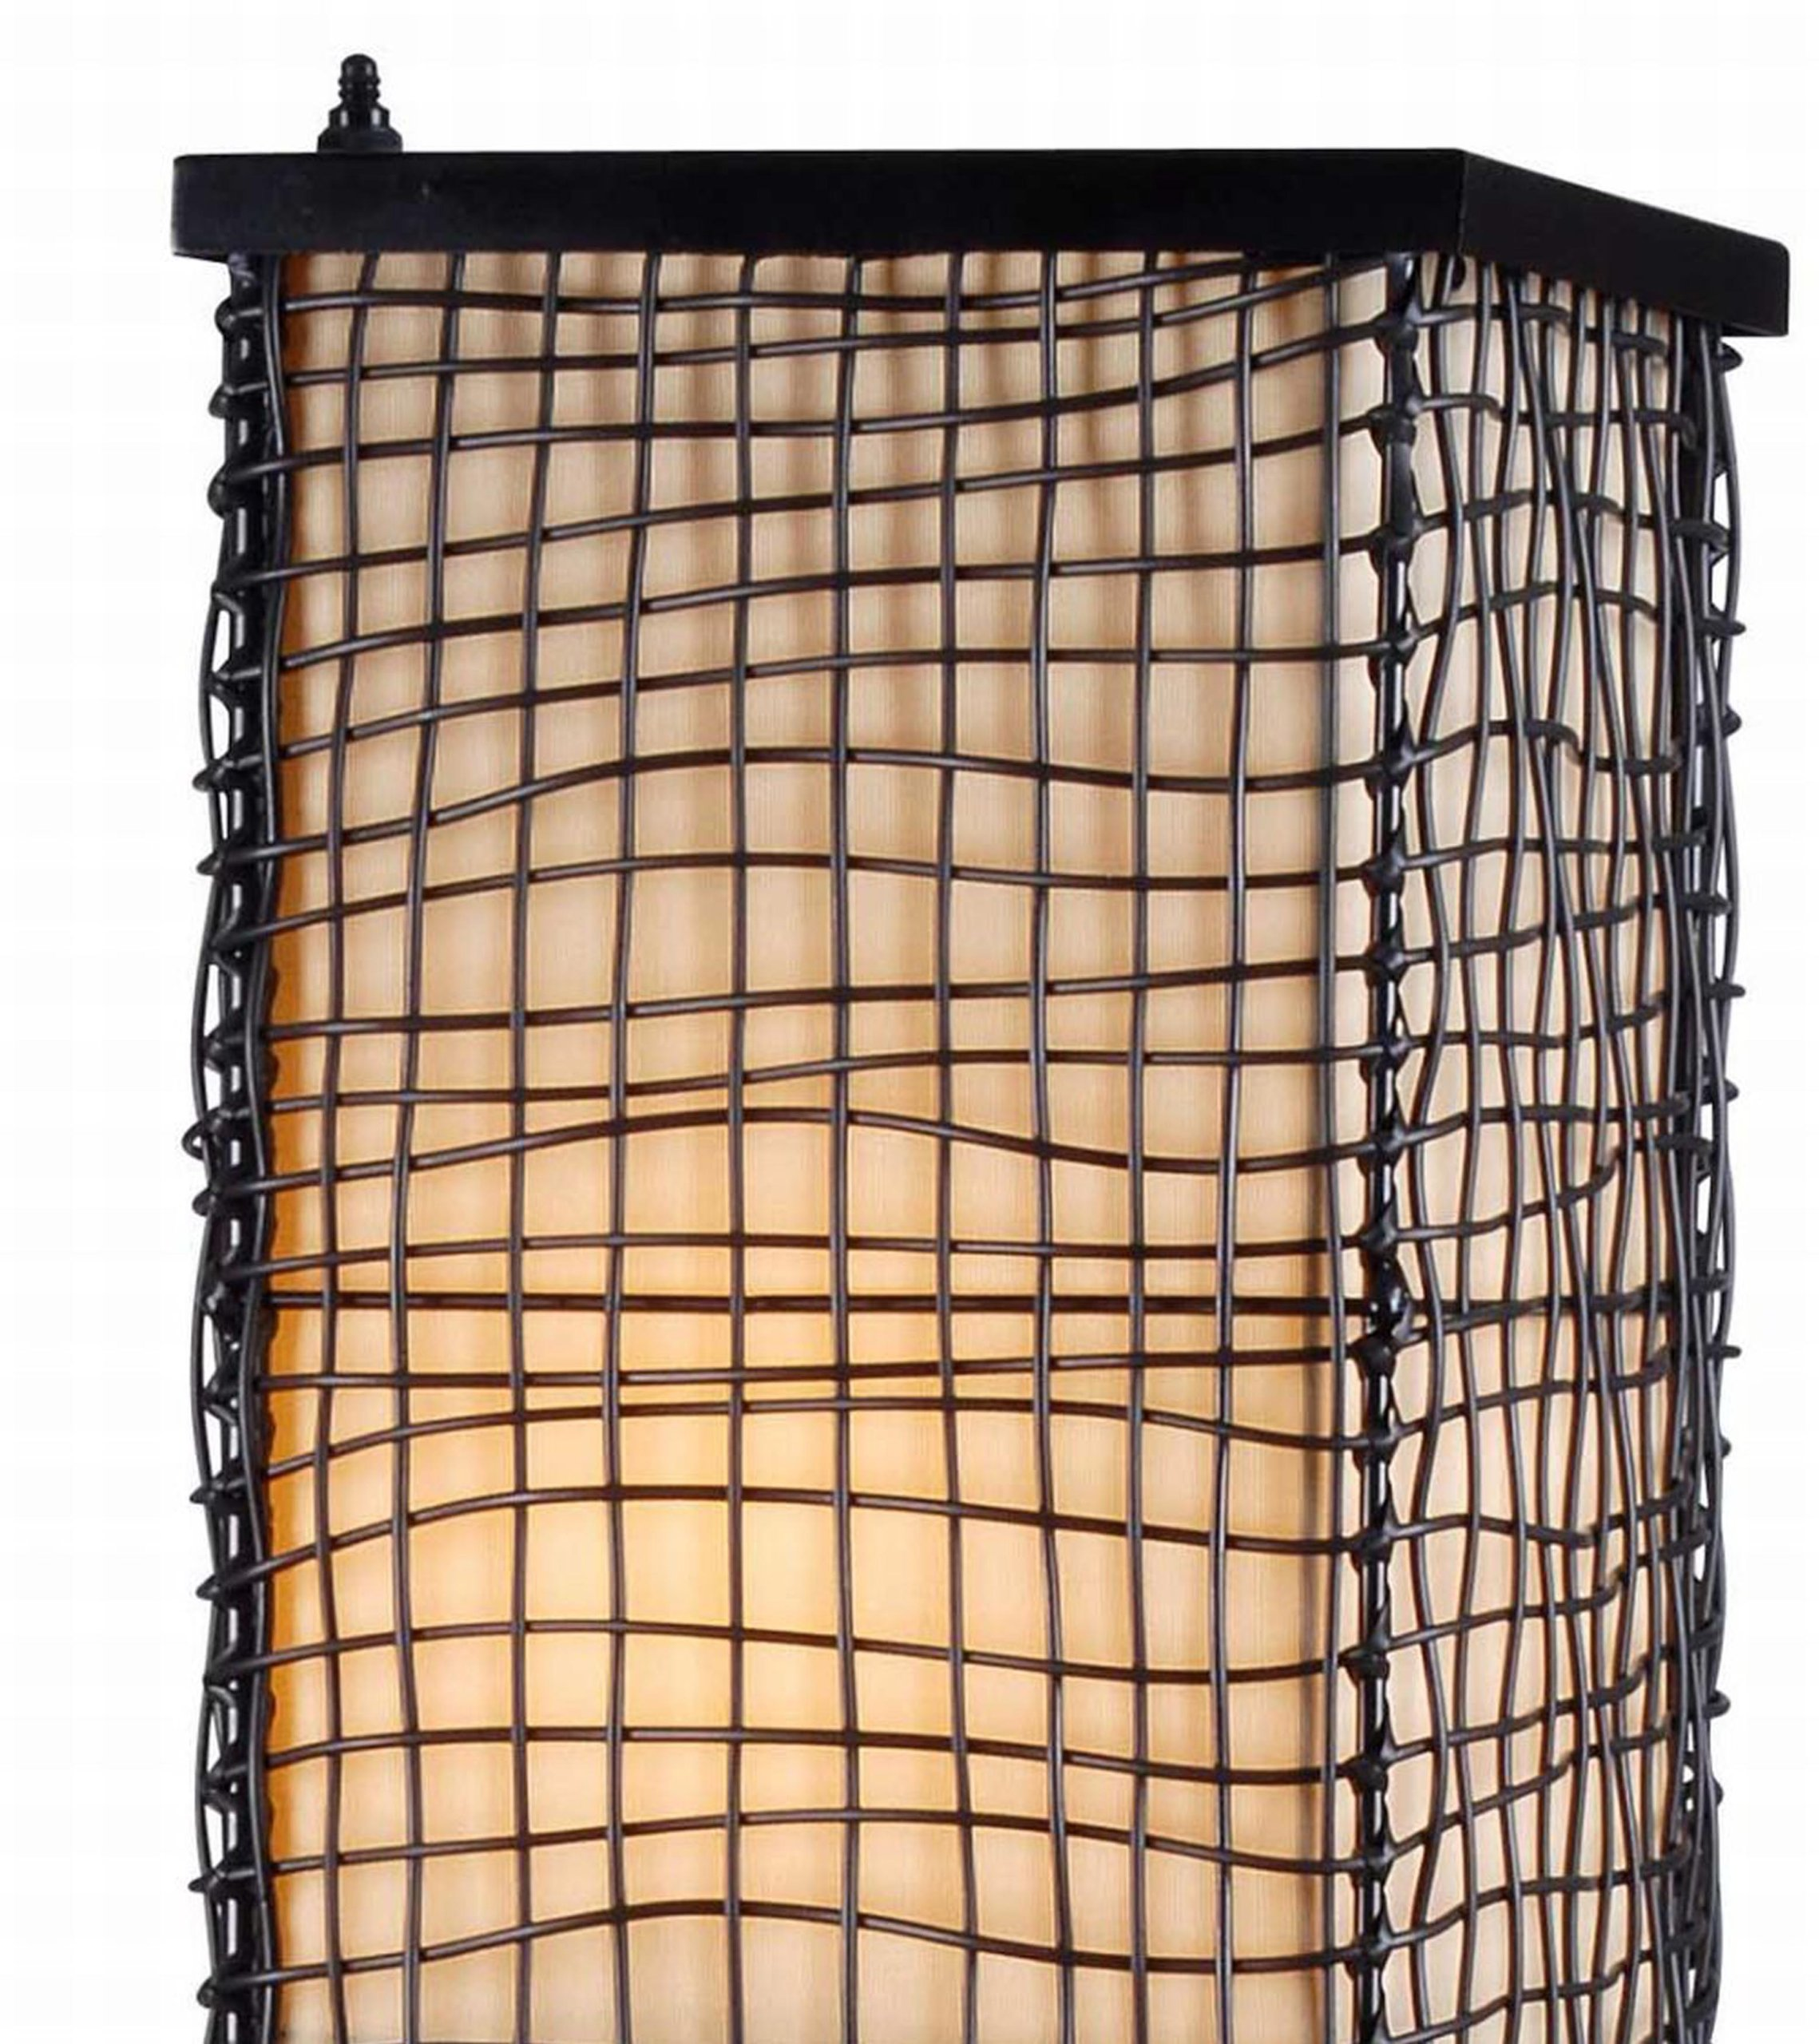 Kenroy Home 32250BRZ Trellis Outdoor Floor Lamp, Bronze  Finish, 51'' x 9'' x 9'' by Kenroy Home